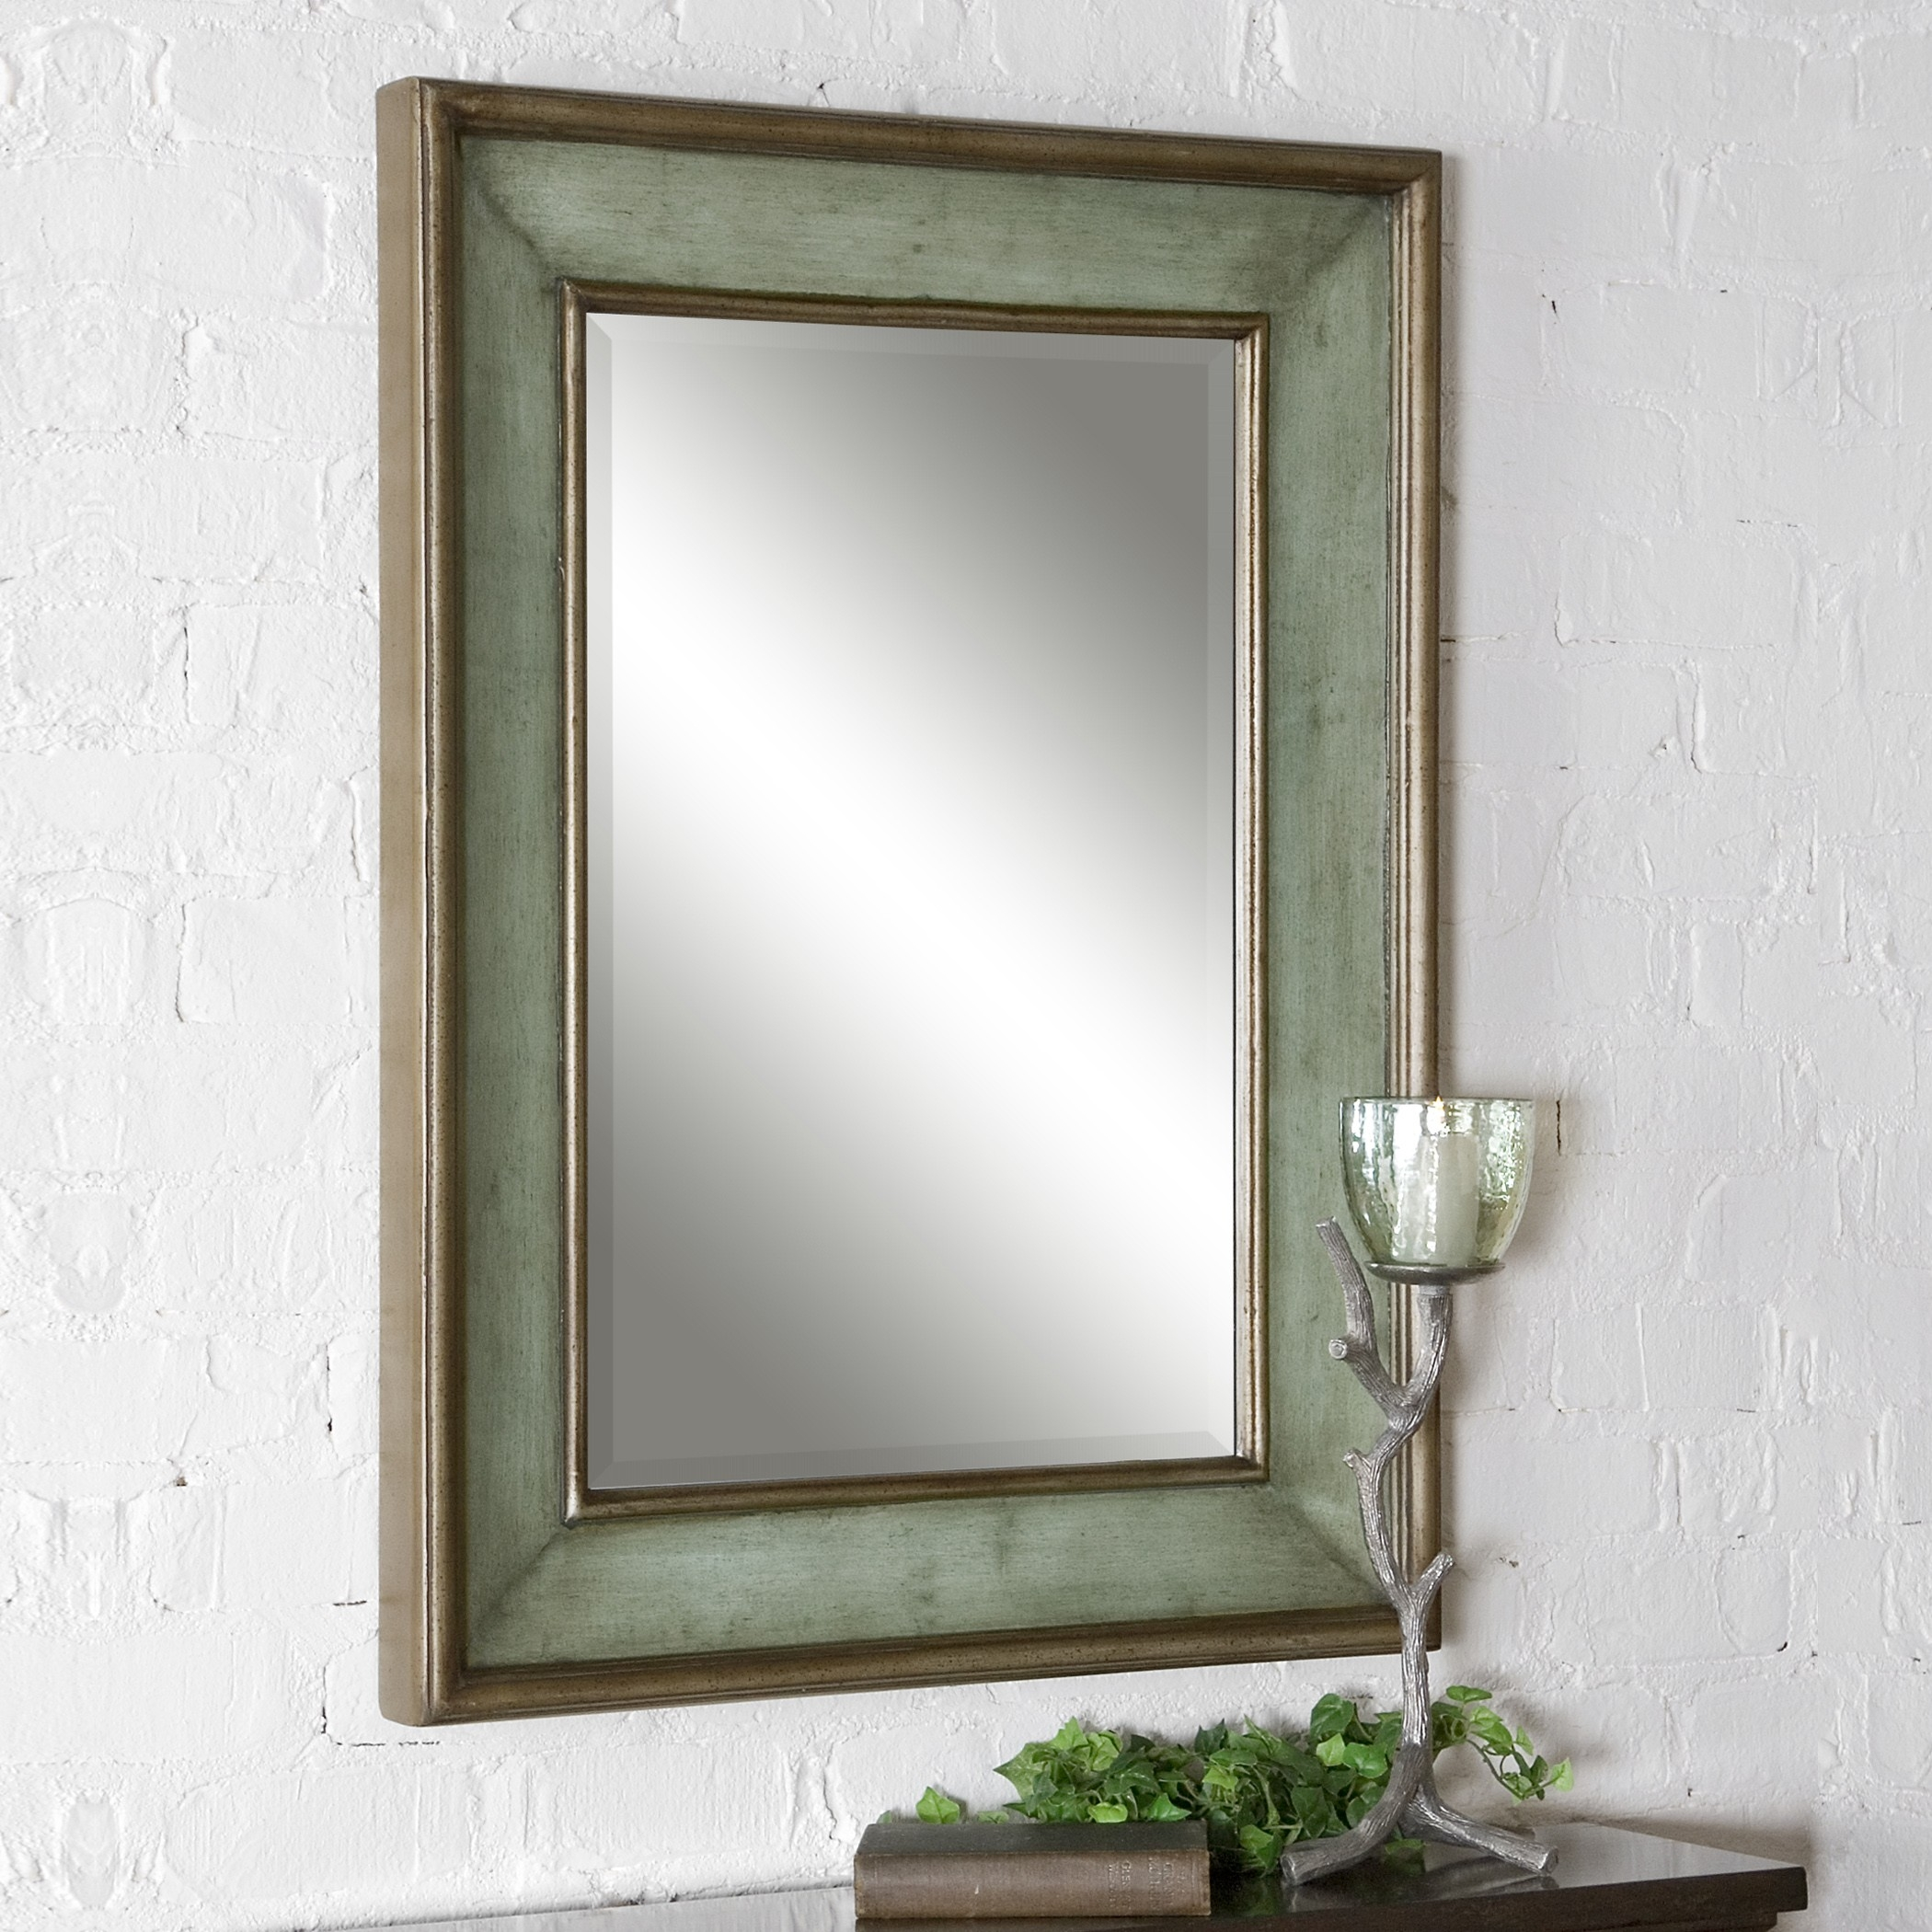 The Well Appointed House Luxuries For The Home The Well Throughout Mirror With Blue Frame (Image 13 of 15)